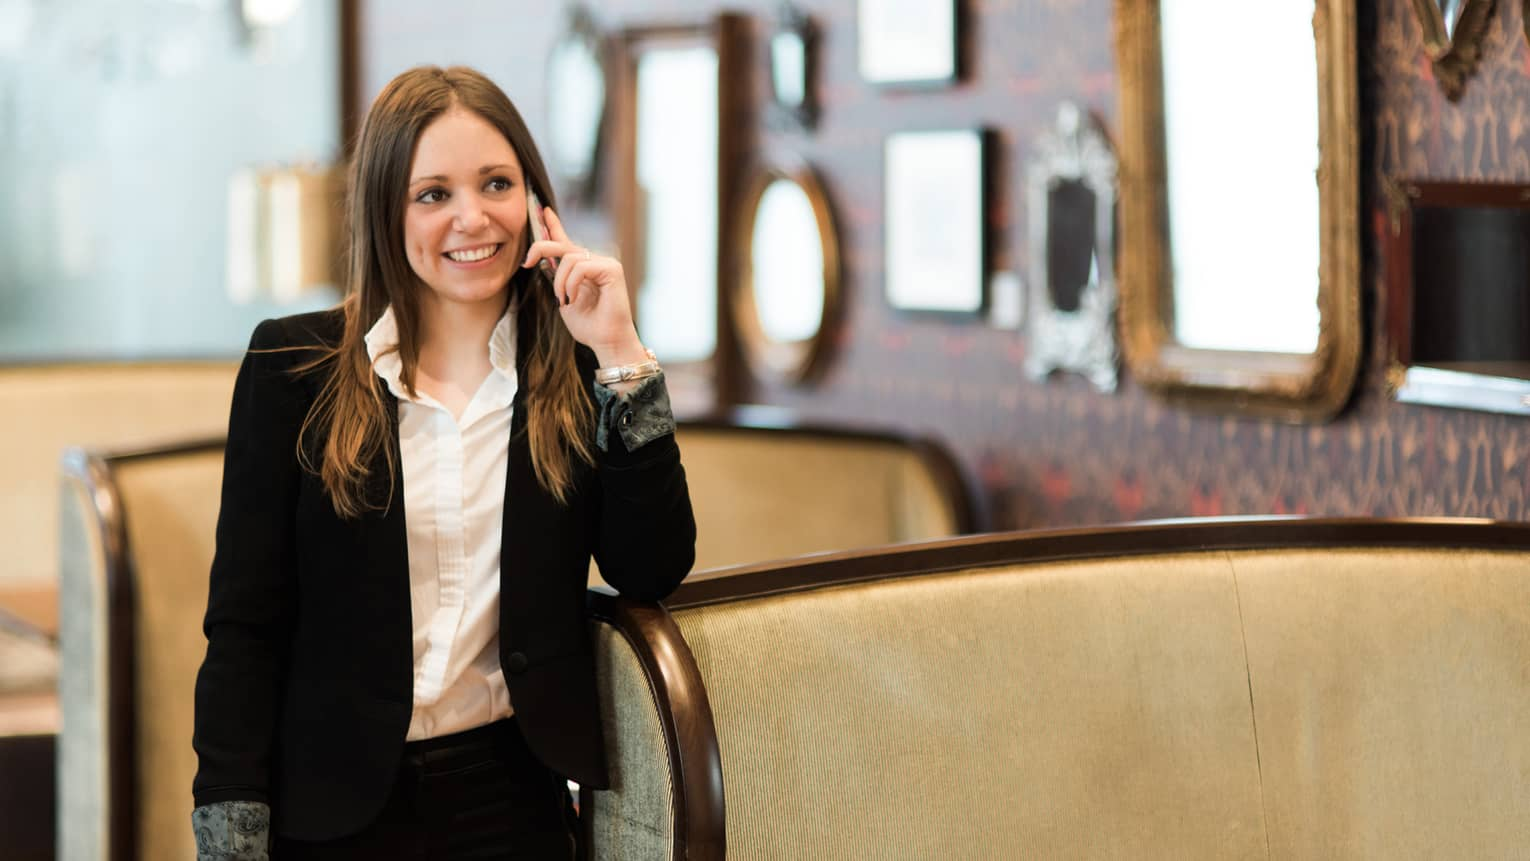 Woman in suit smiling and holding phone standing next to banquette with mirrors on wall